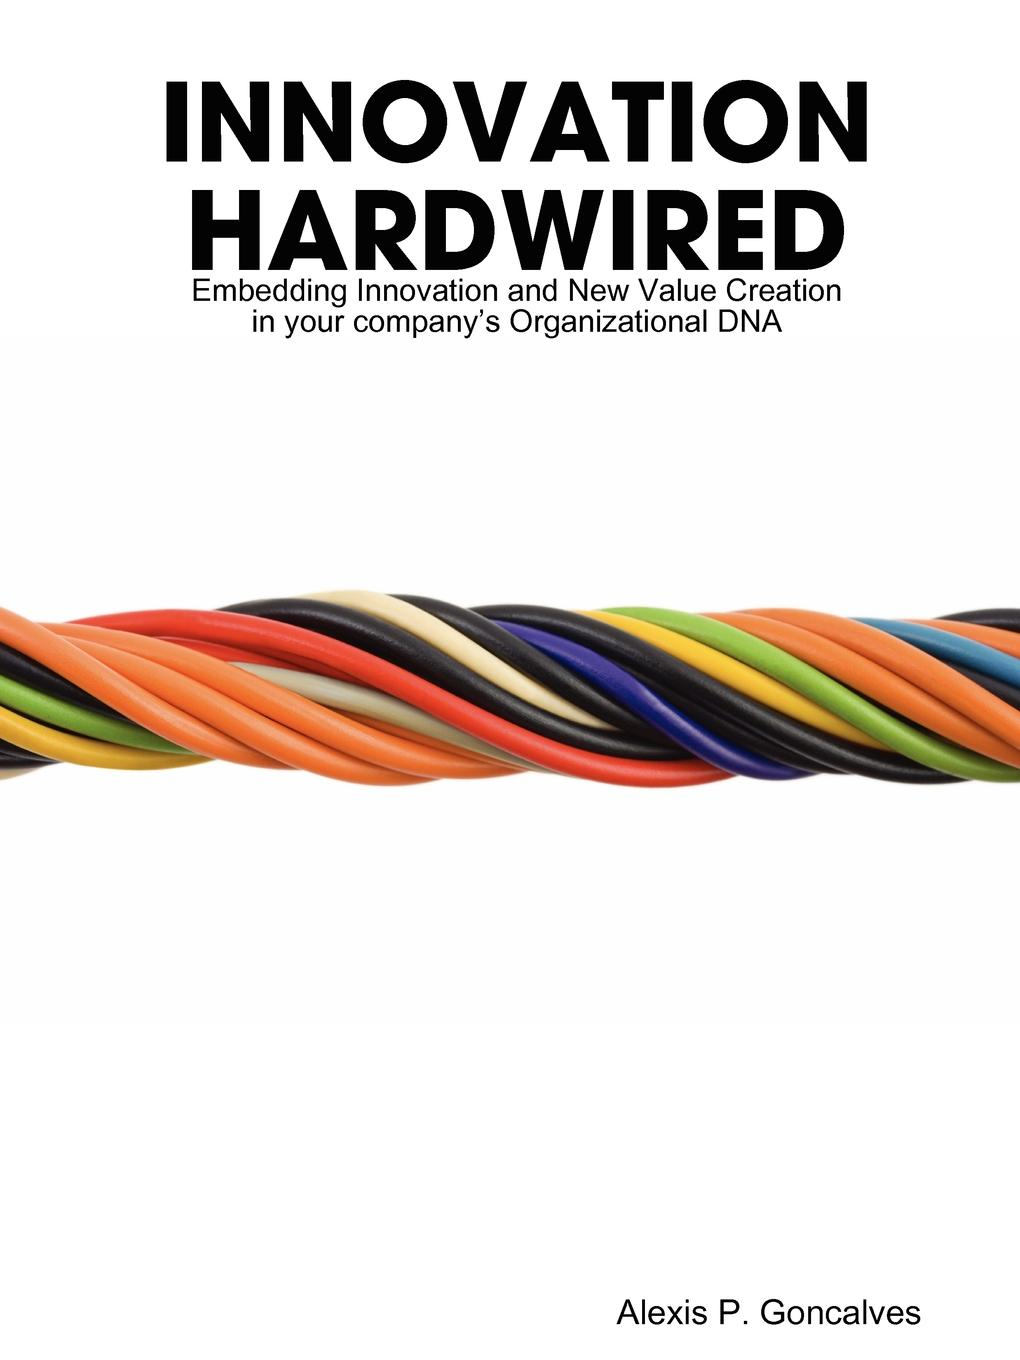 Innovation Hardwired Innovation is the fundamental source of value creation in companies...